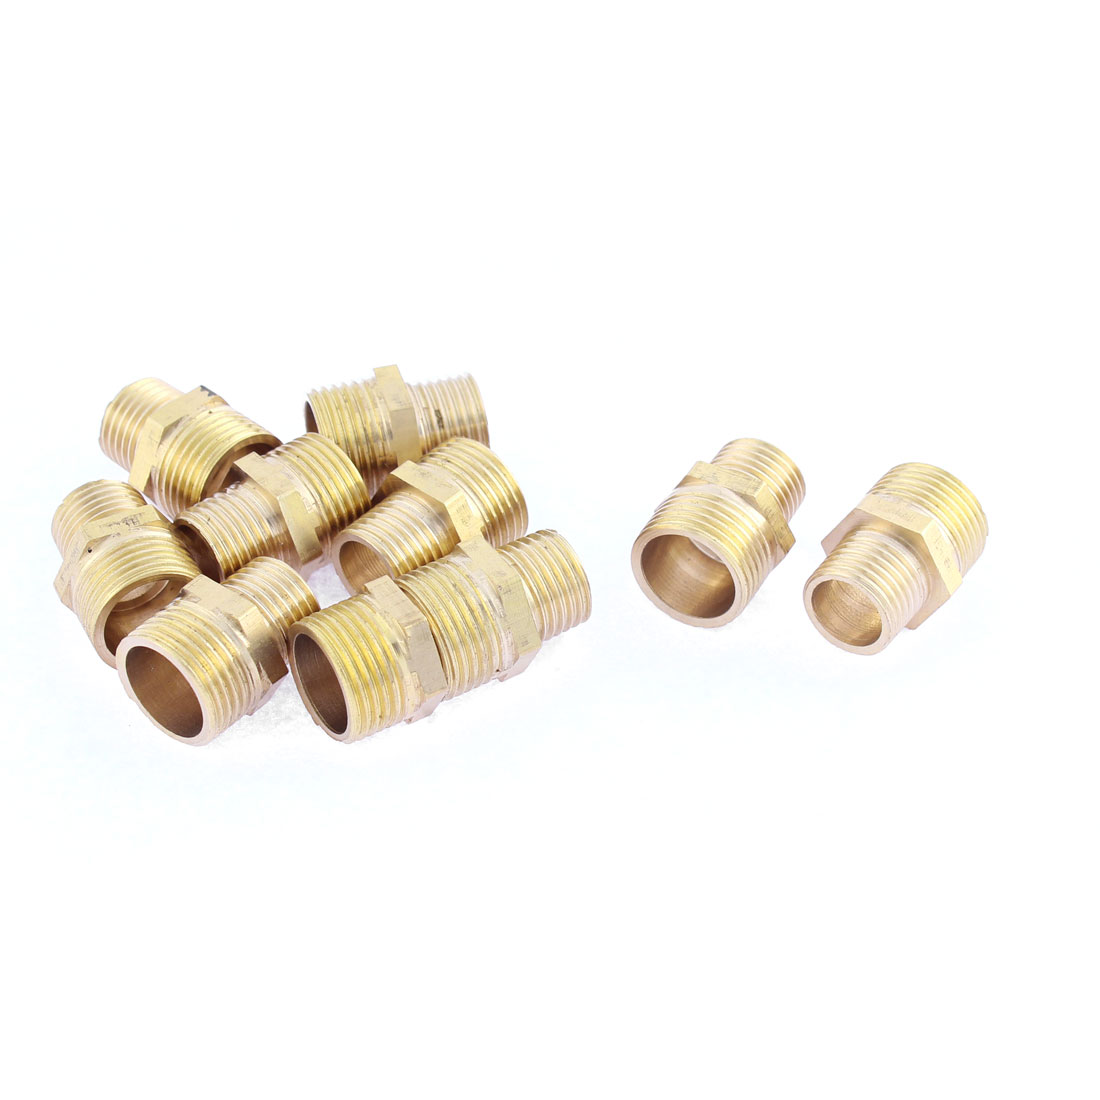 Piping Fitting Connector Hex Reducing Nipple 3/8BSP to 1/4 BSP 22mm Long 10Pcs